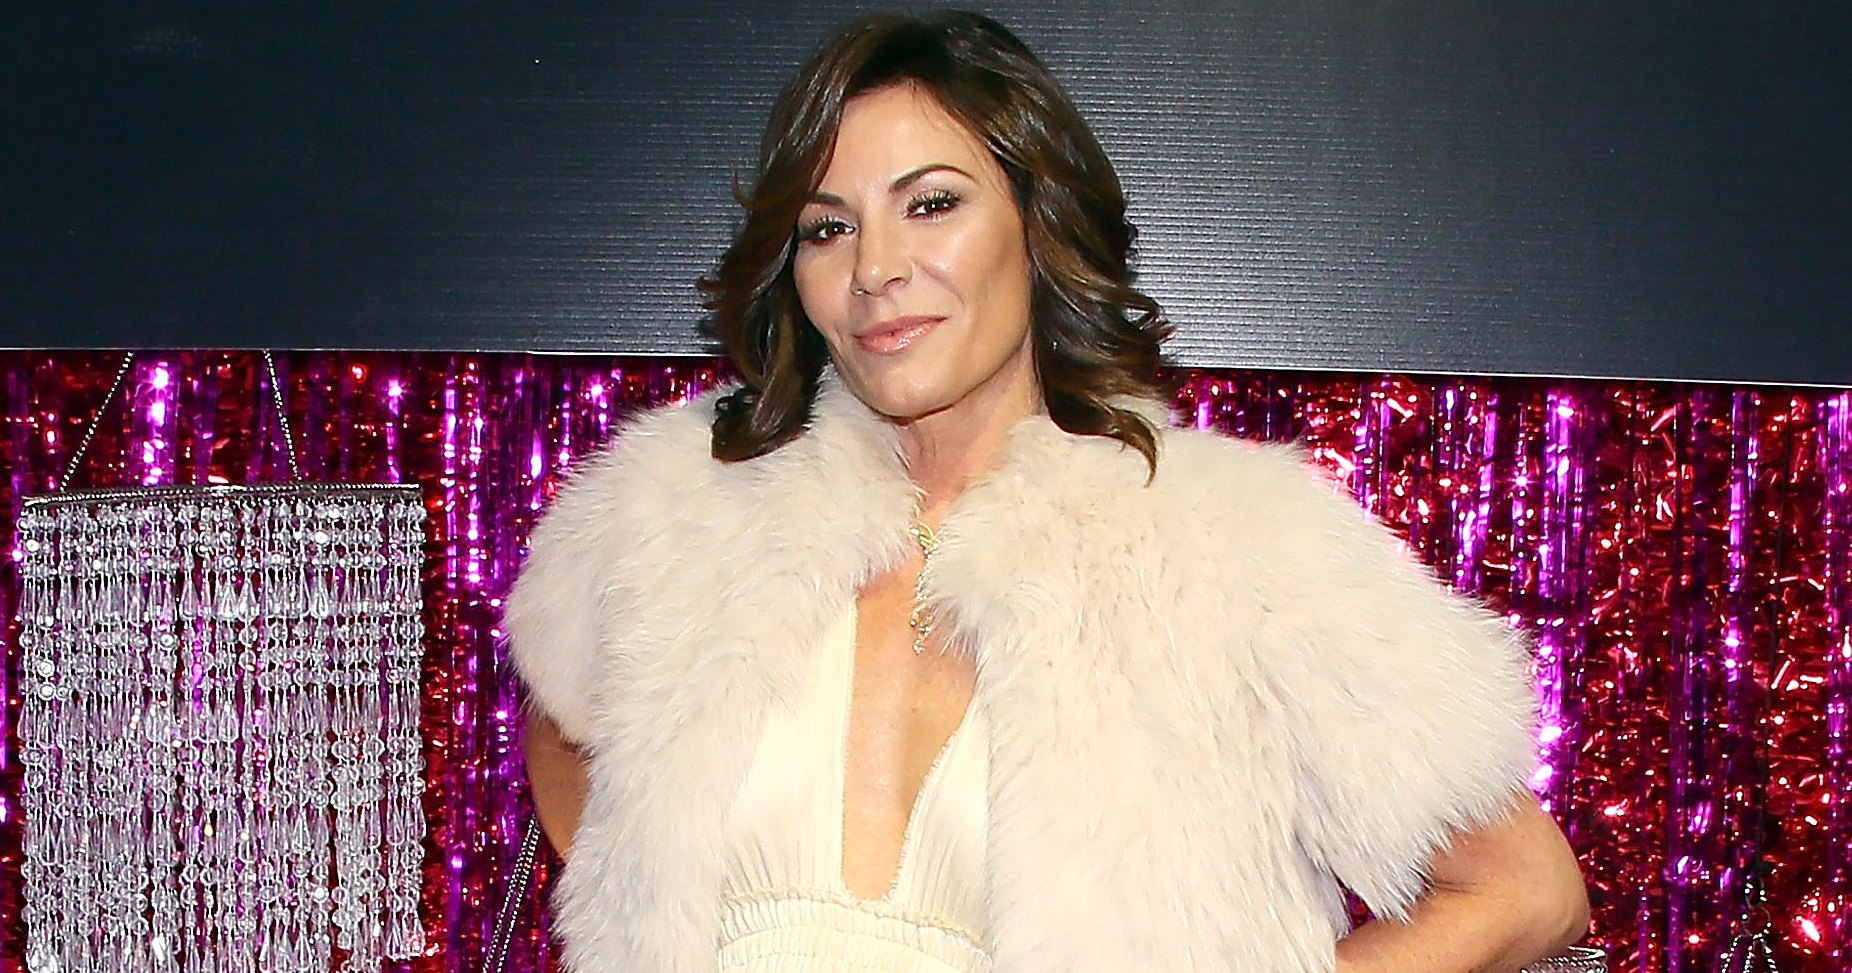 Luann de Lesseps Fails to Prove She Is Attending Alcoholics Anonymous Meetings: Report